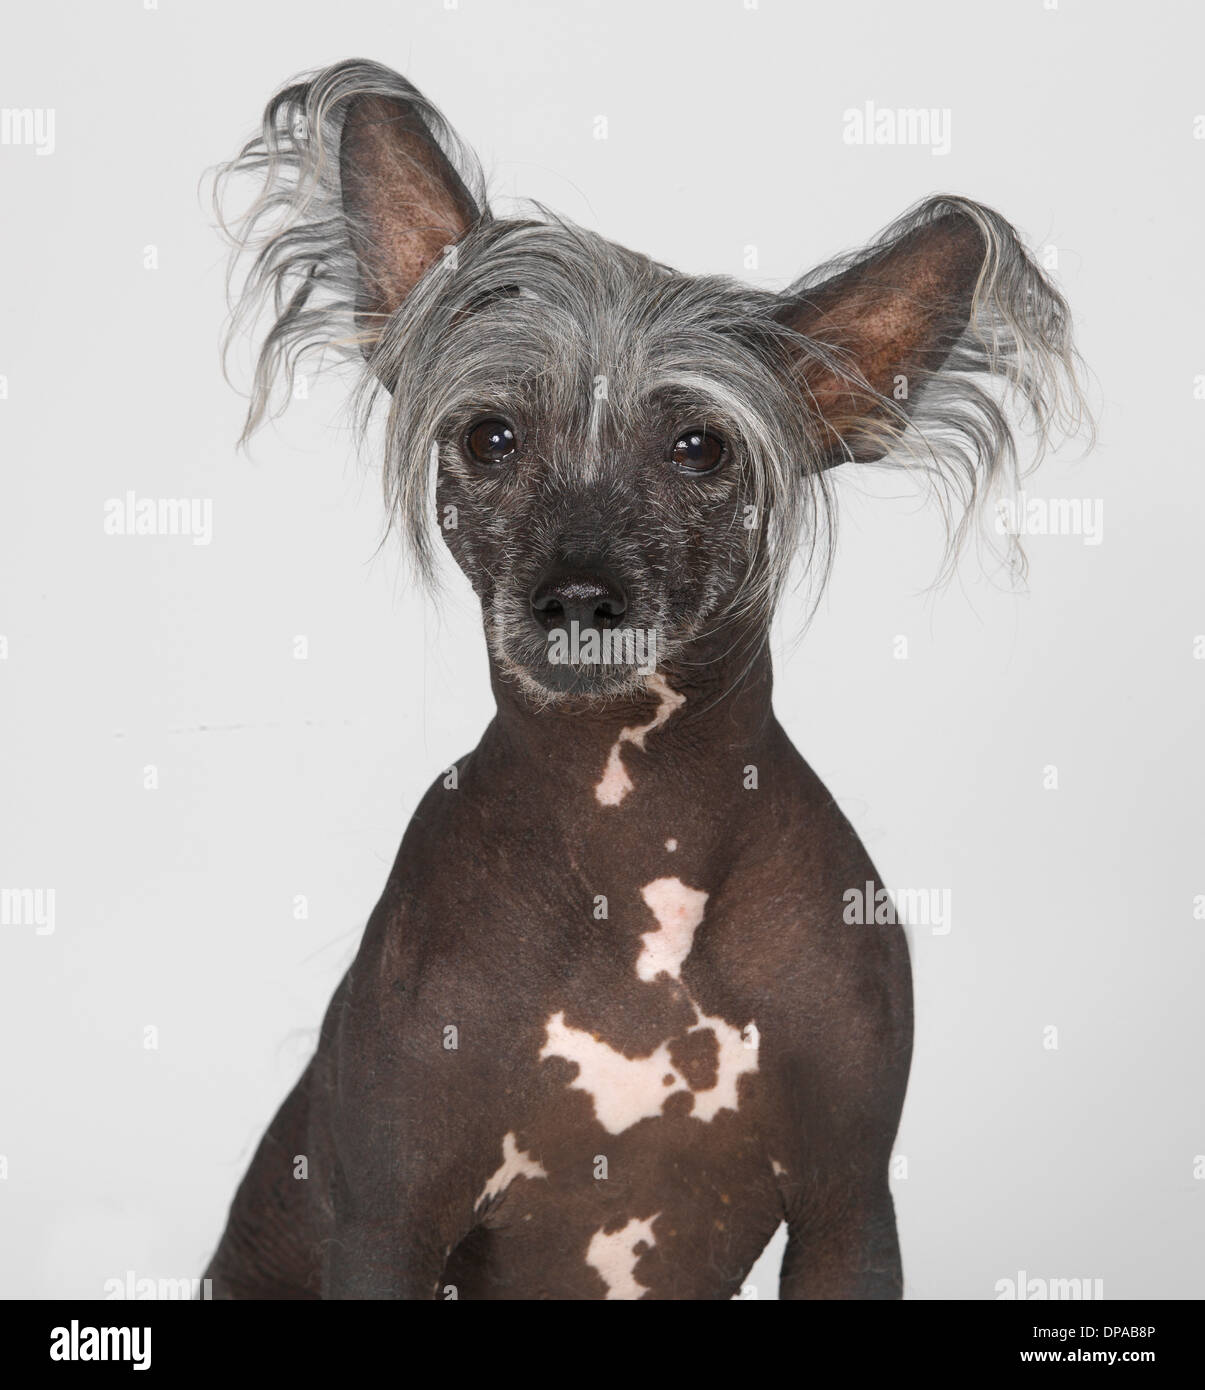 Chinese Crested Dog - Stock Image